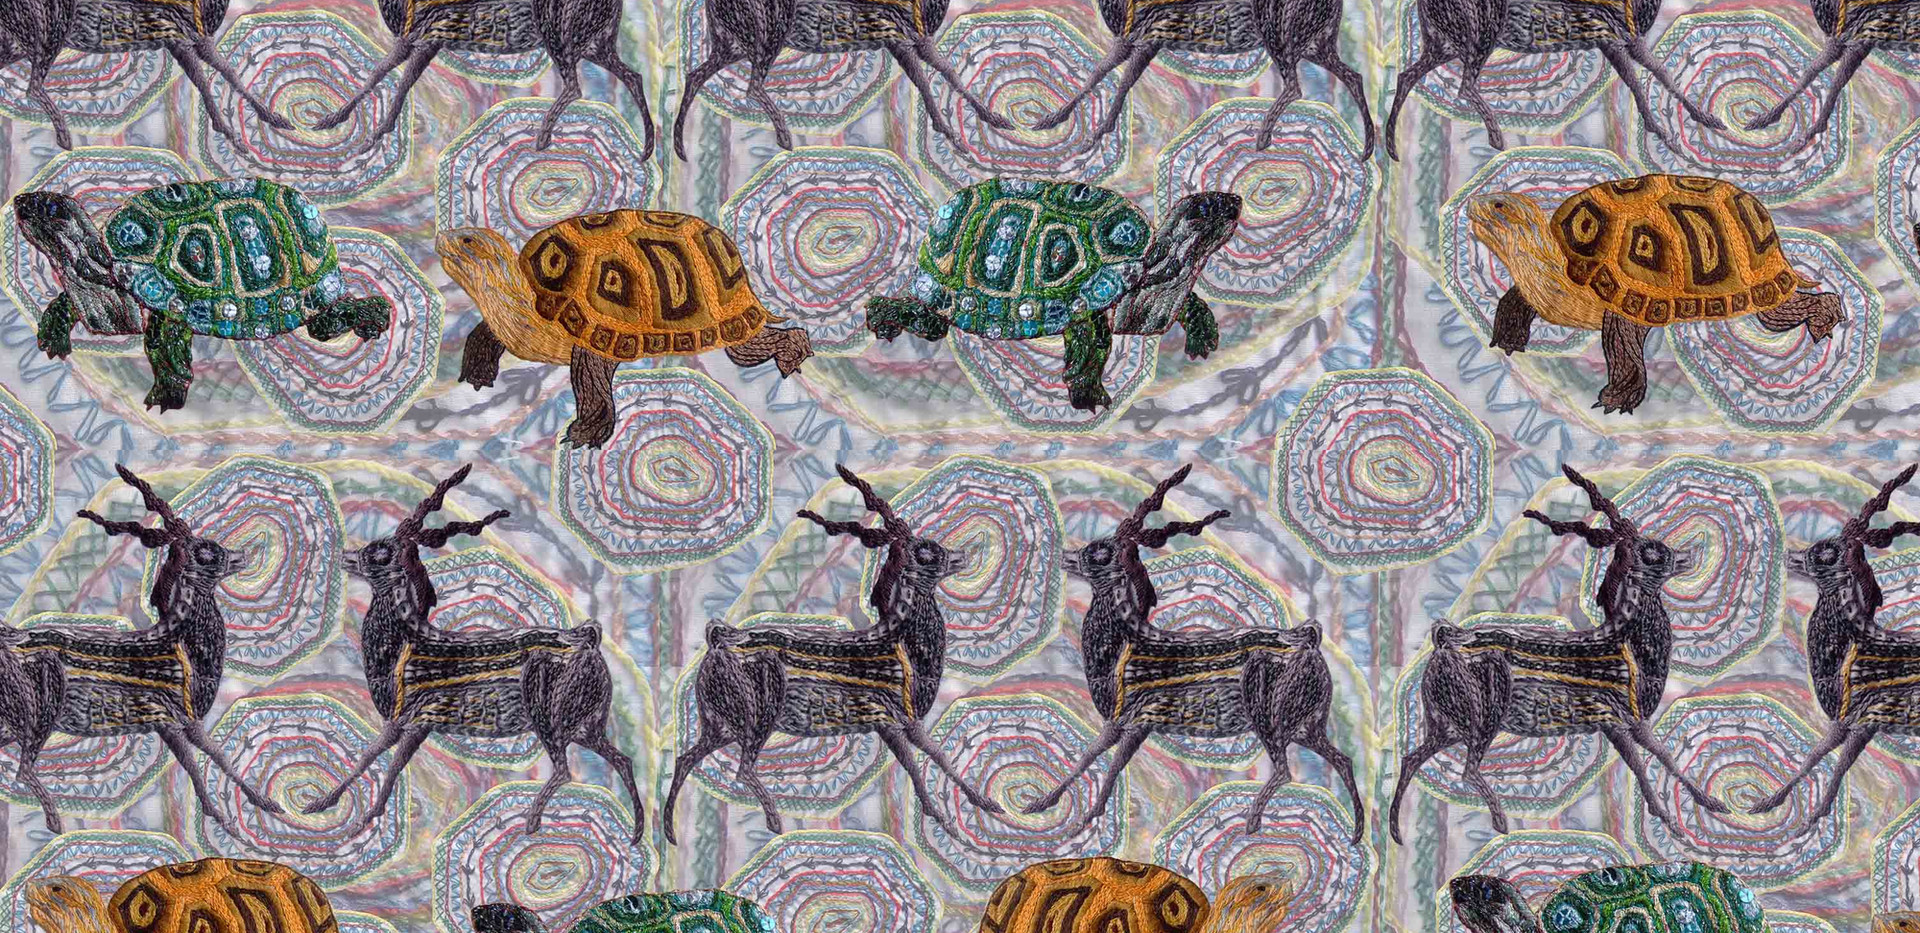 Deer and Tortoise Pattern